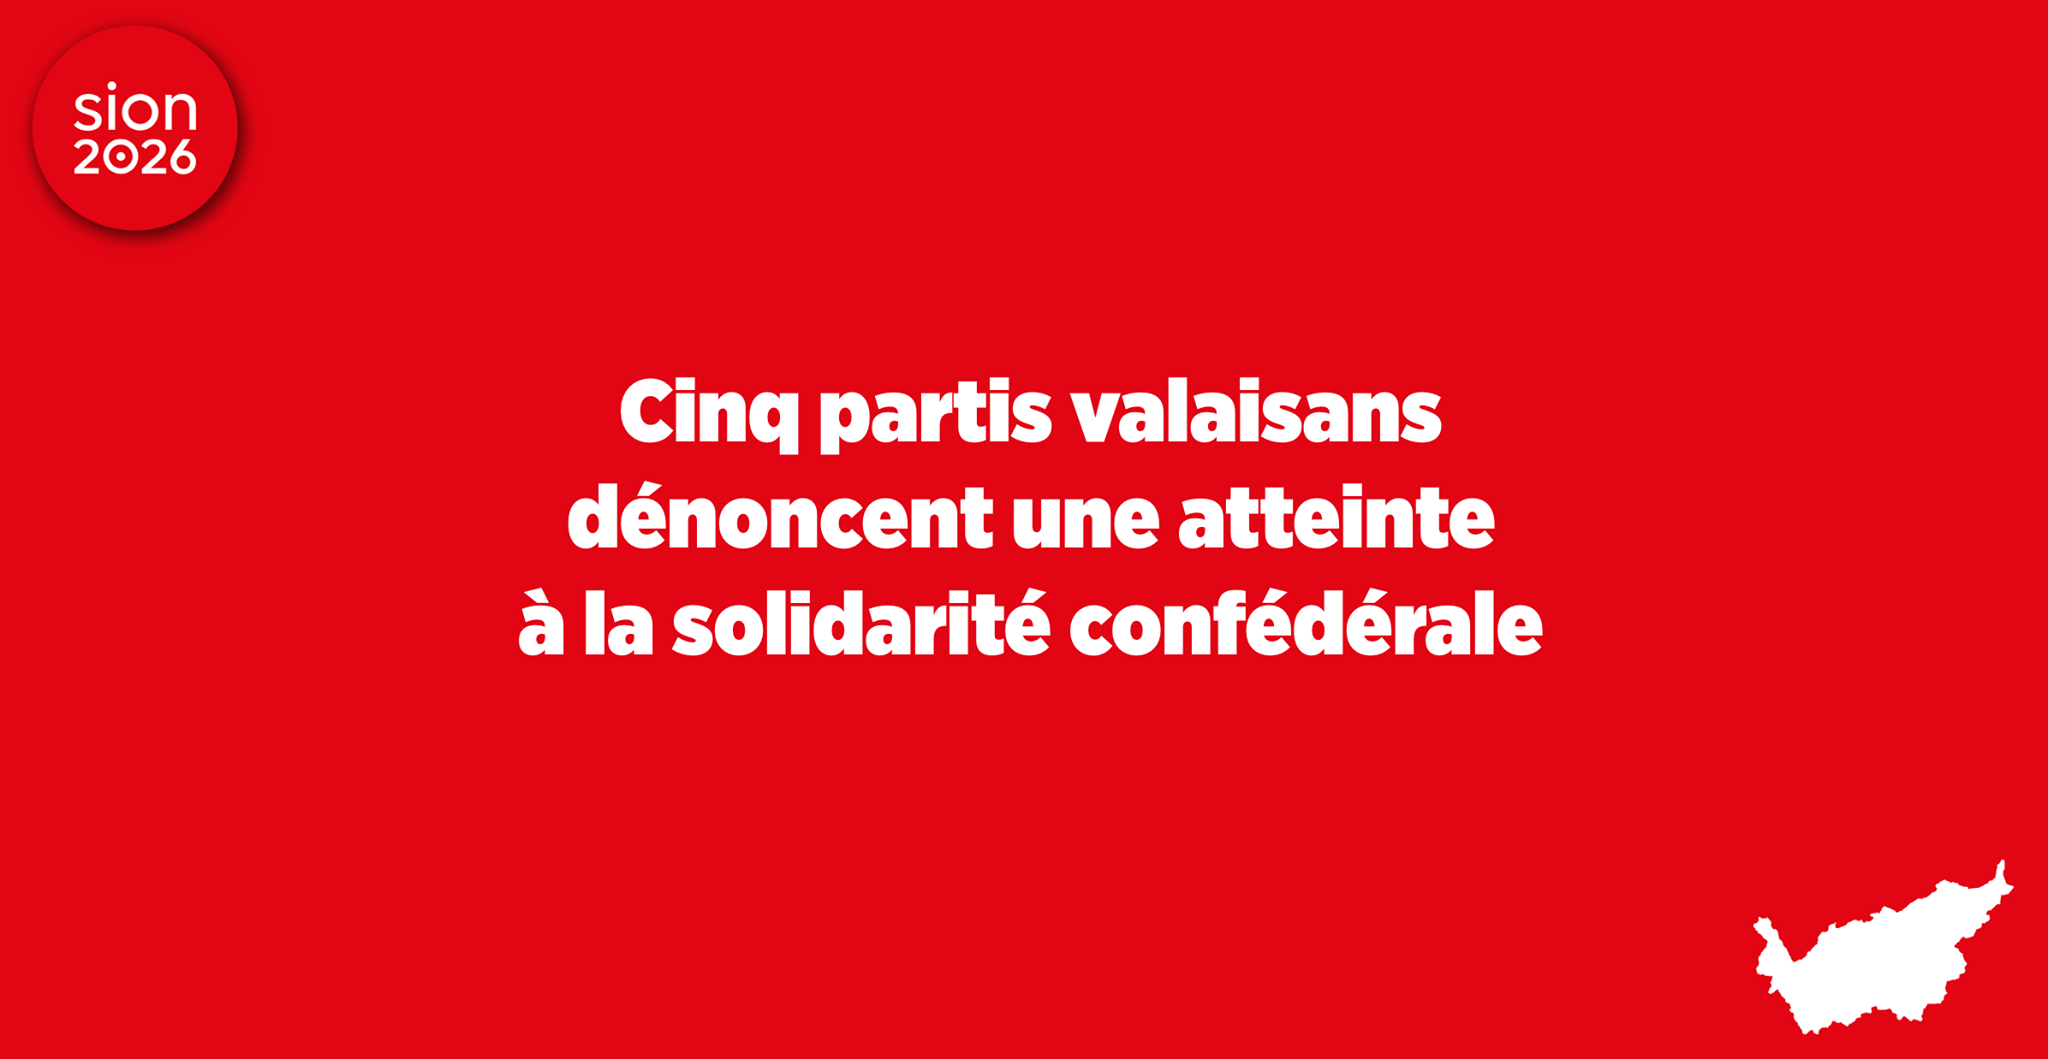 A joint statement from five Valais political parties claimed the motion to extend a referendum nationwide on Sion's bid for the 2026 Olympic and Paralympic Games was an attack on Confederal solidarity ©Sion 2026